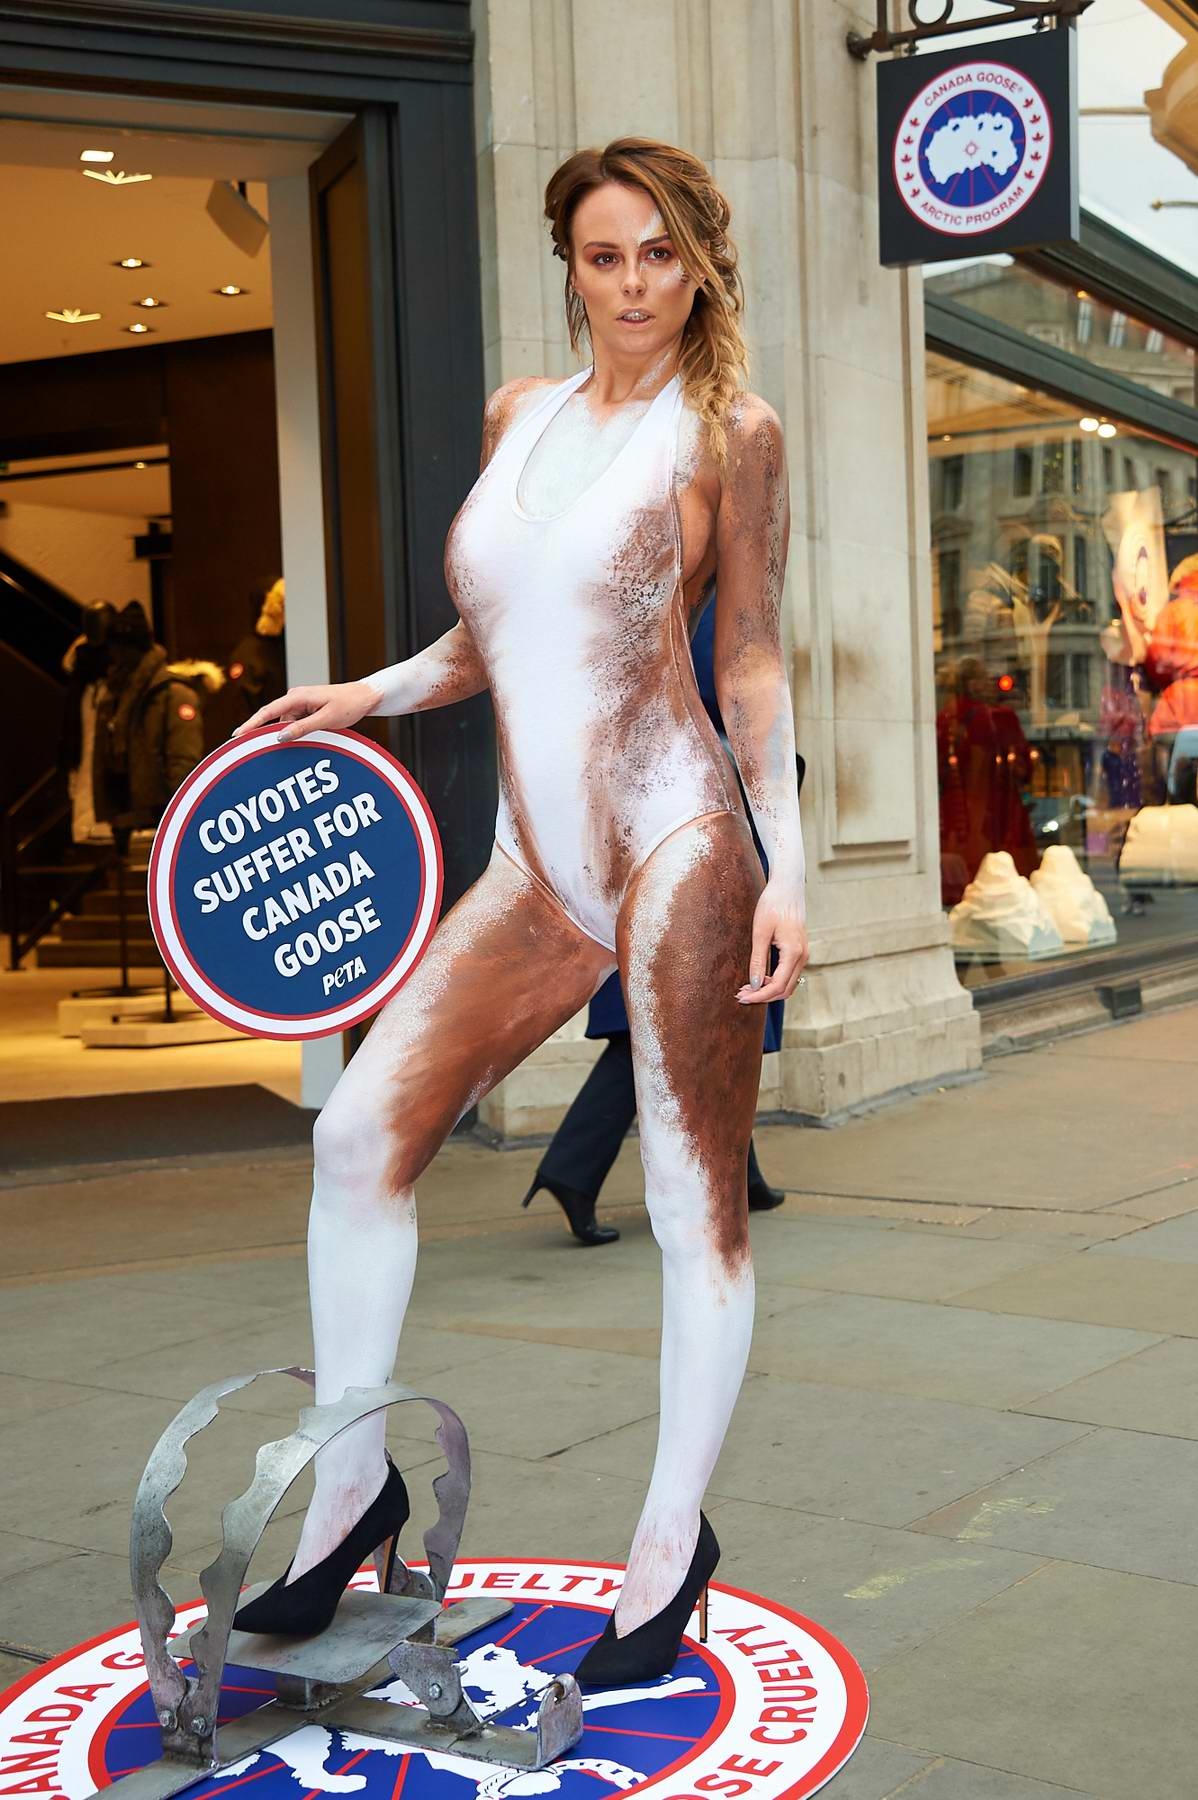 Rhian Sugden with her body painted as a coyote protests outside Canada Goose in Regent Street, London